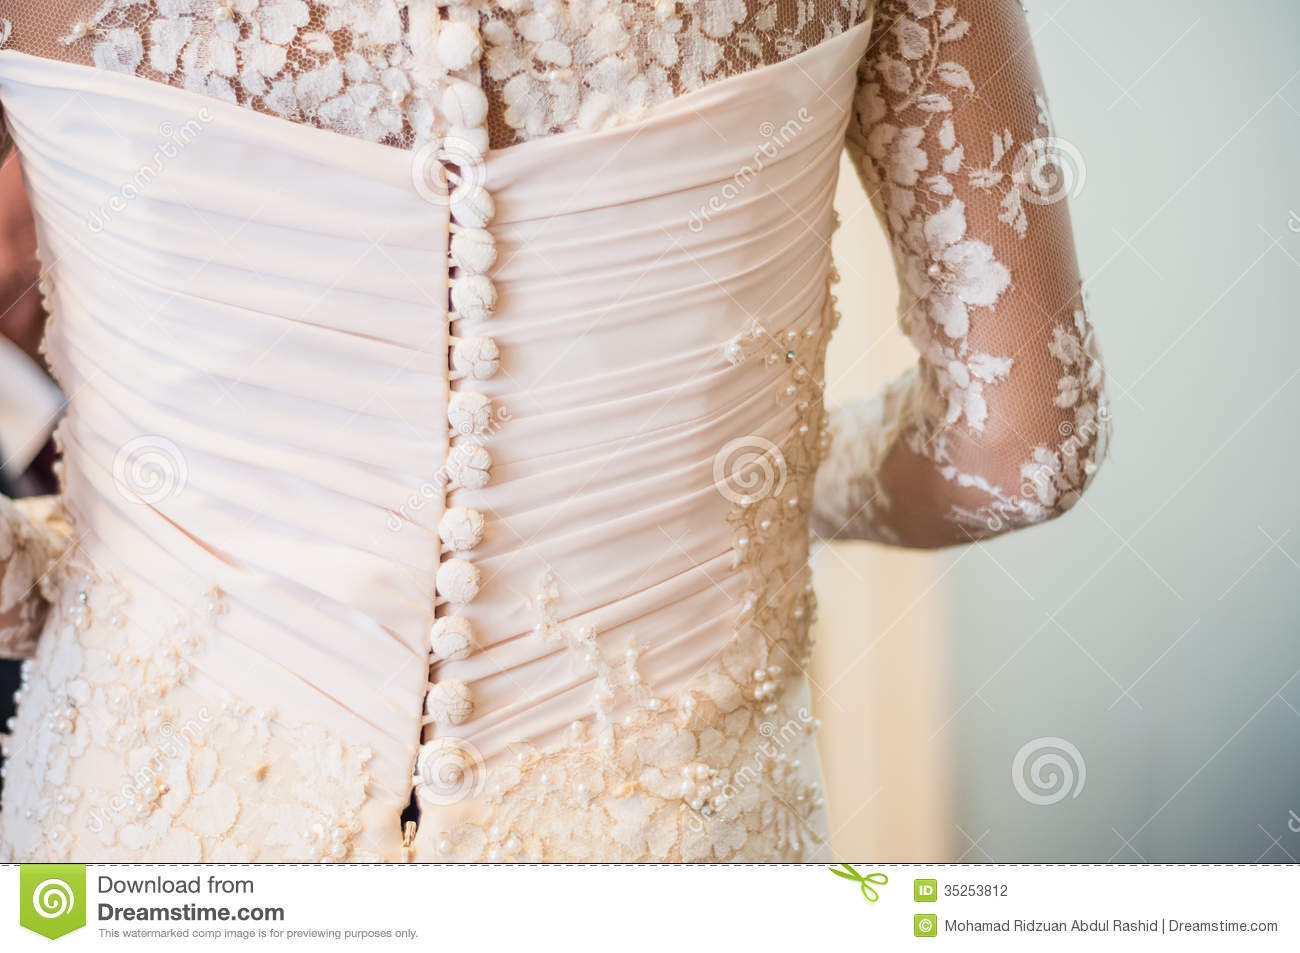 Buttons on dress stock illustration. Illustration of accessories ...